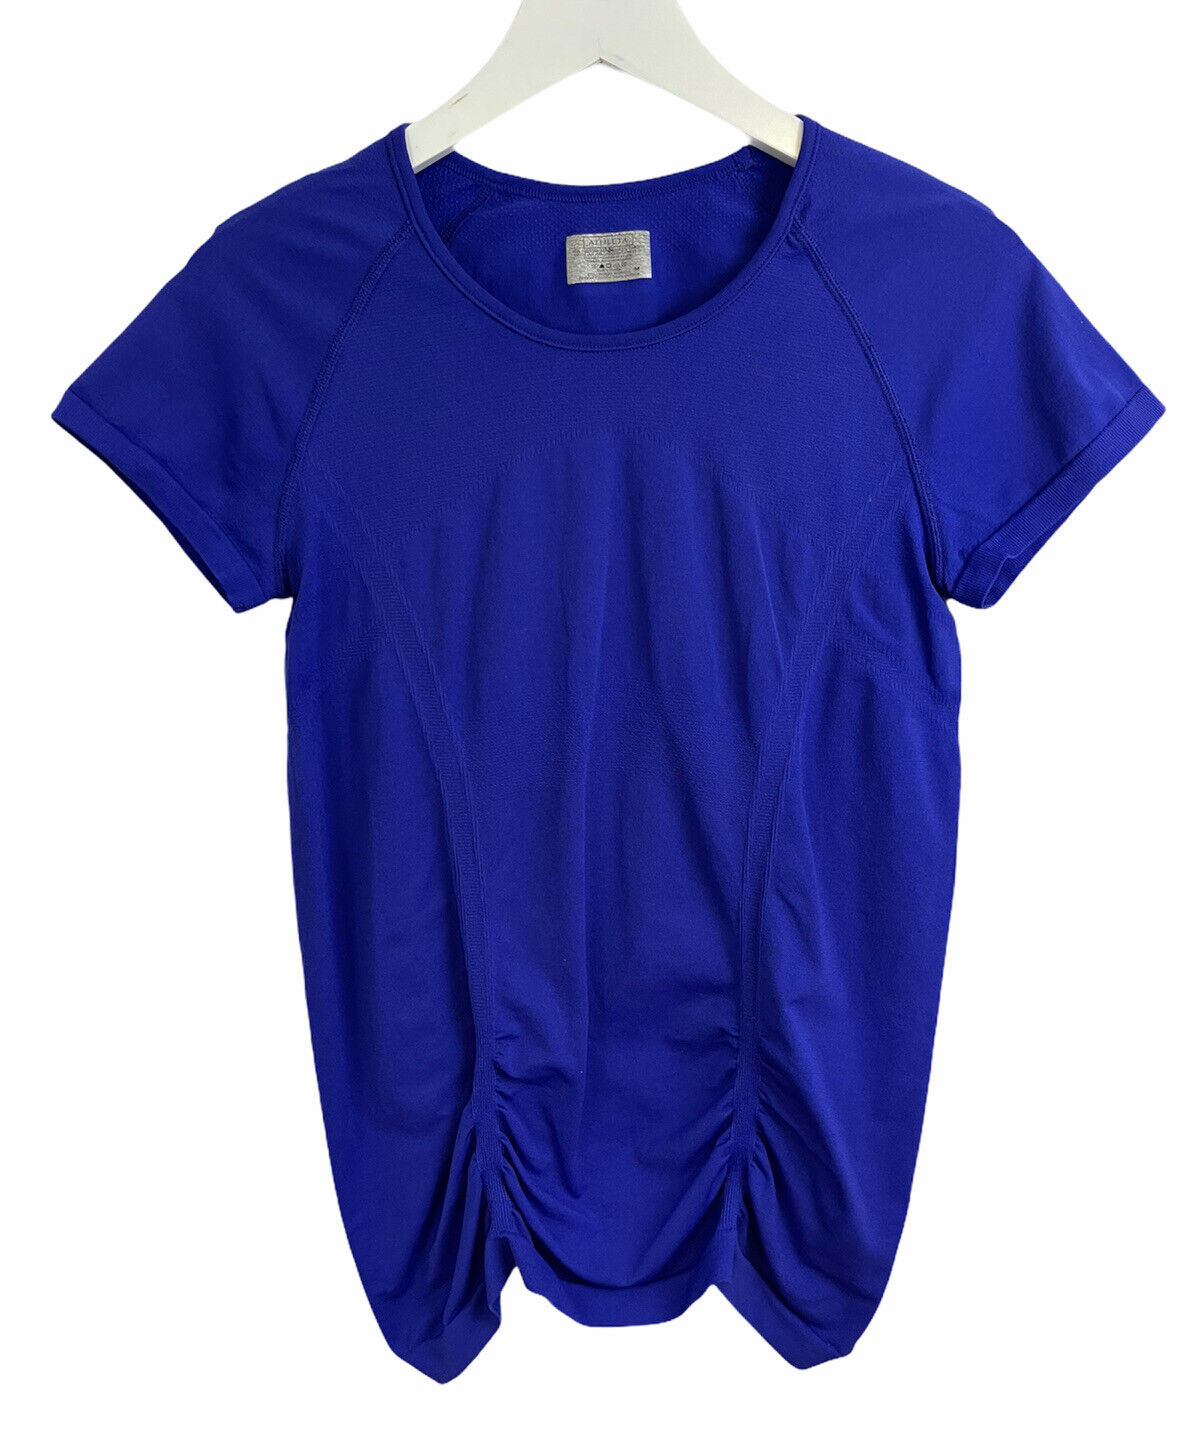 Athleta Women's Blue Fast Track Short Sleeve Shirt Ruched Top Athletic Size M